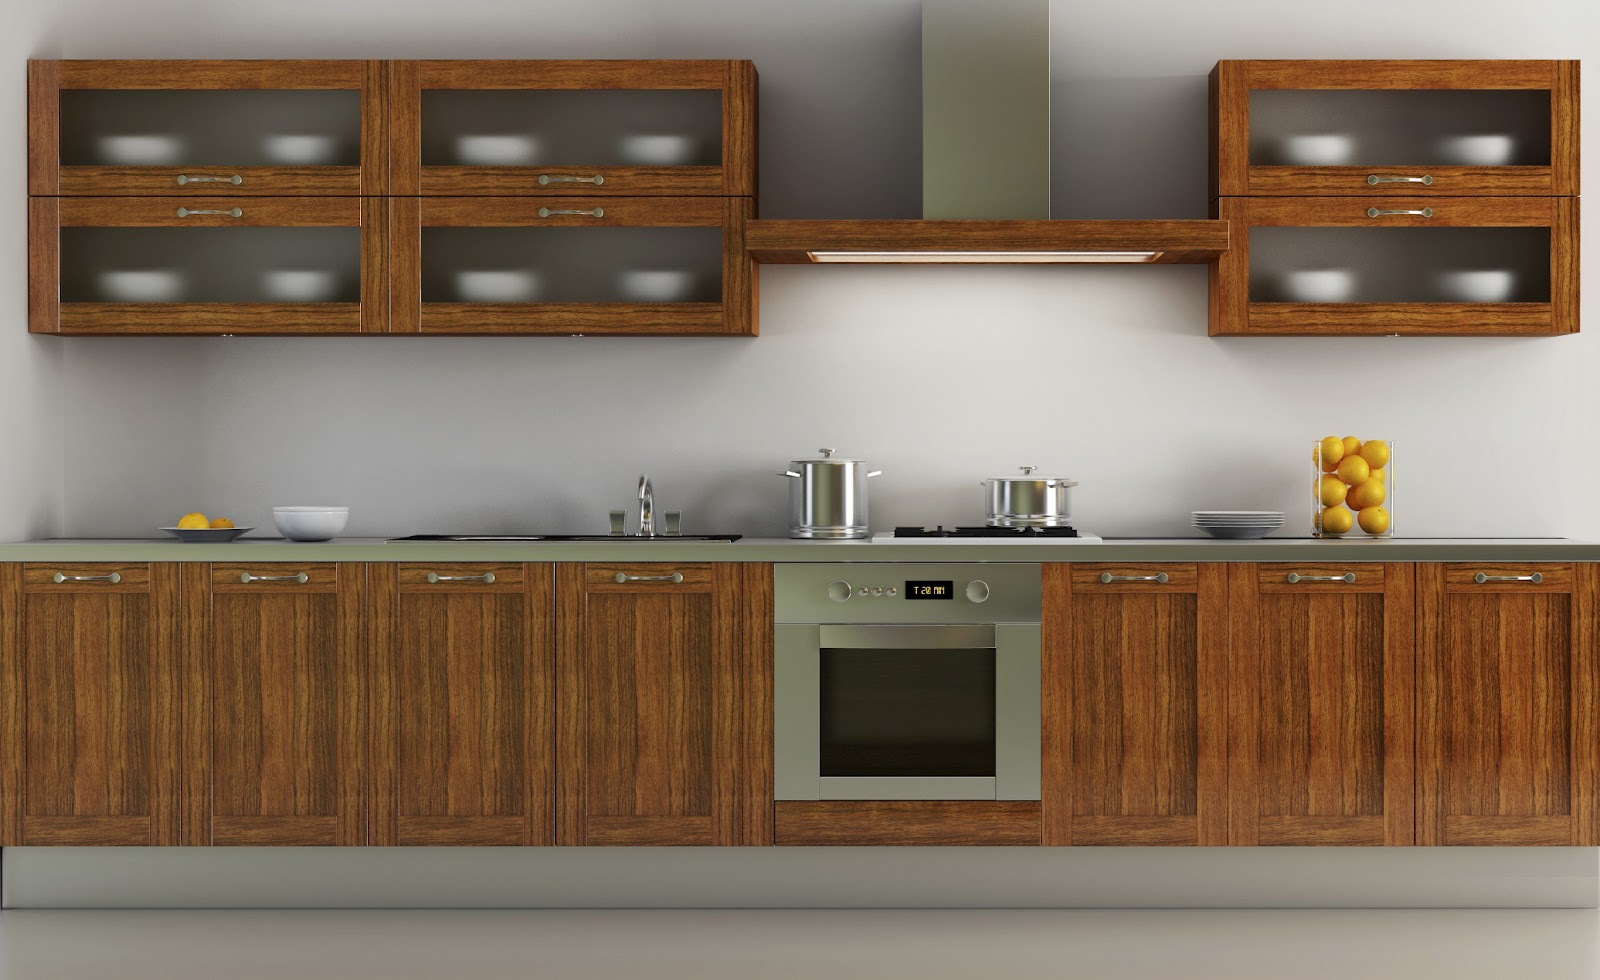 Modern wood furniture designs ideas an interior design for Kitchen furniture design ideas